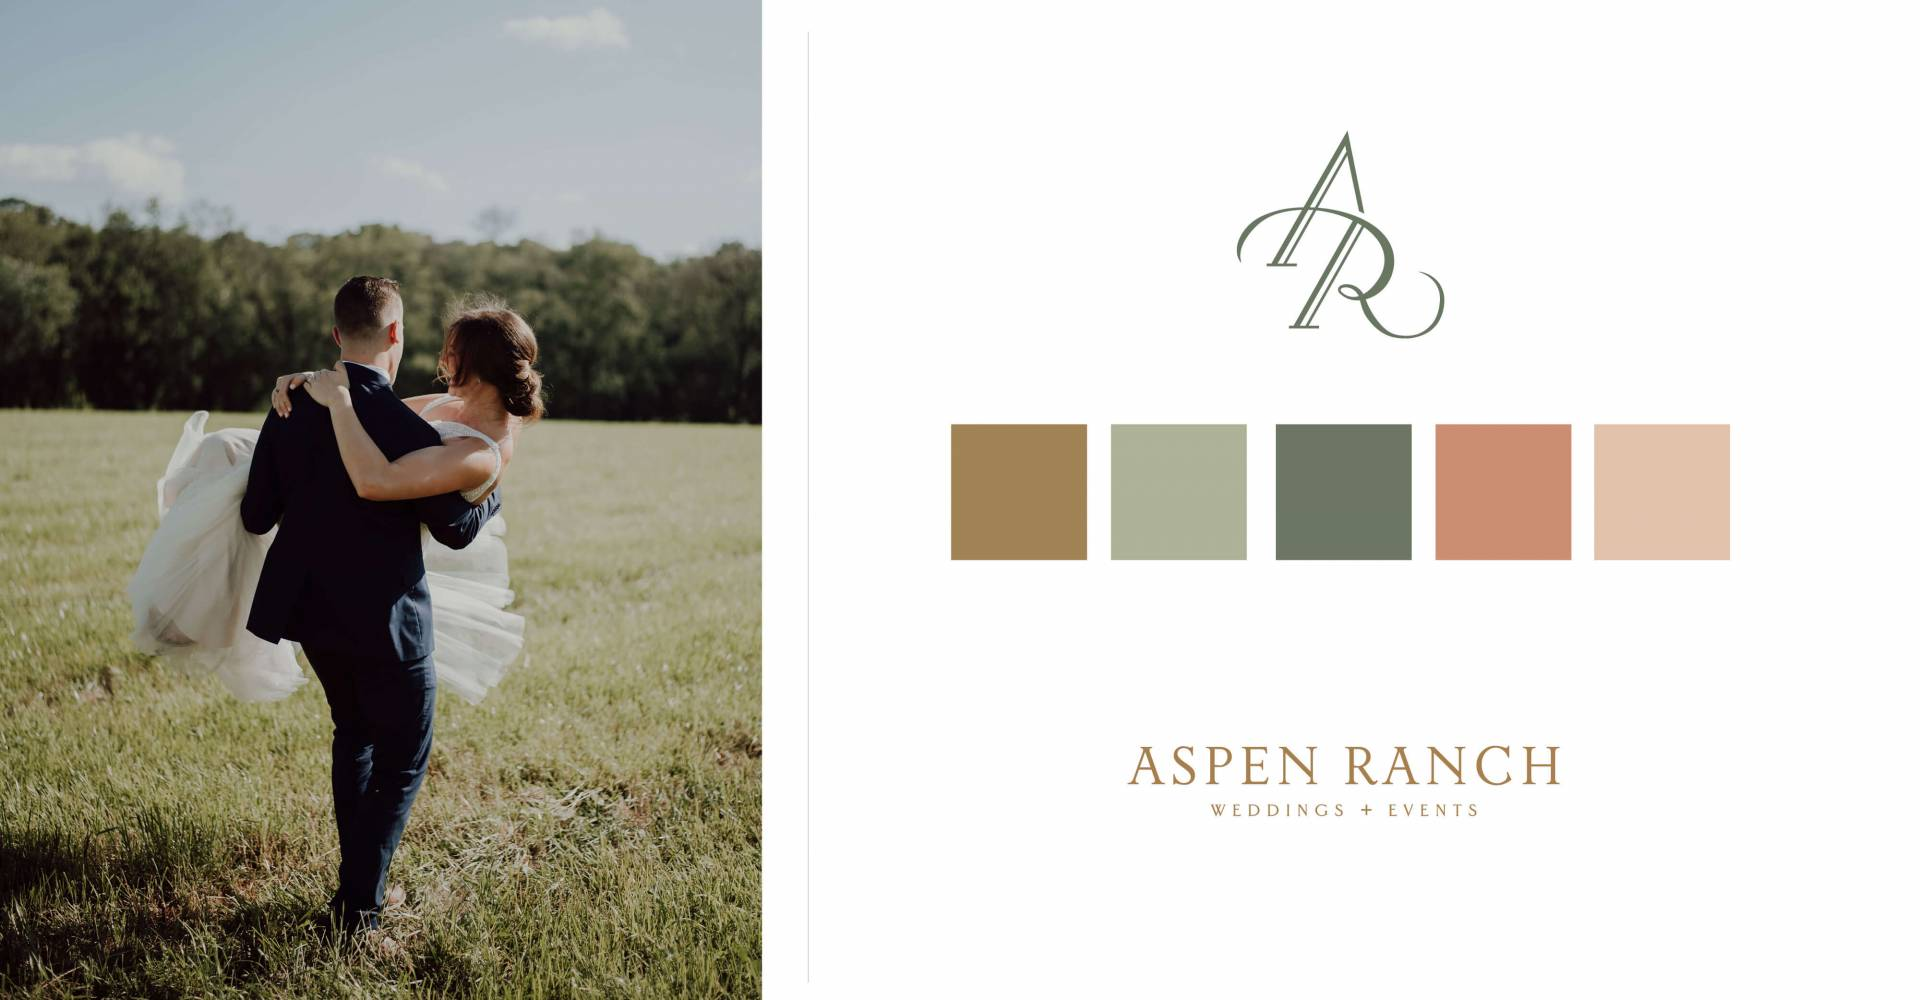 Aspen Ranch Weddings + Events Wedding Vendor Branding